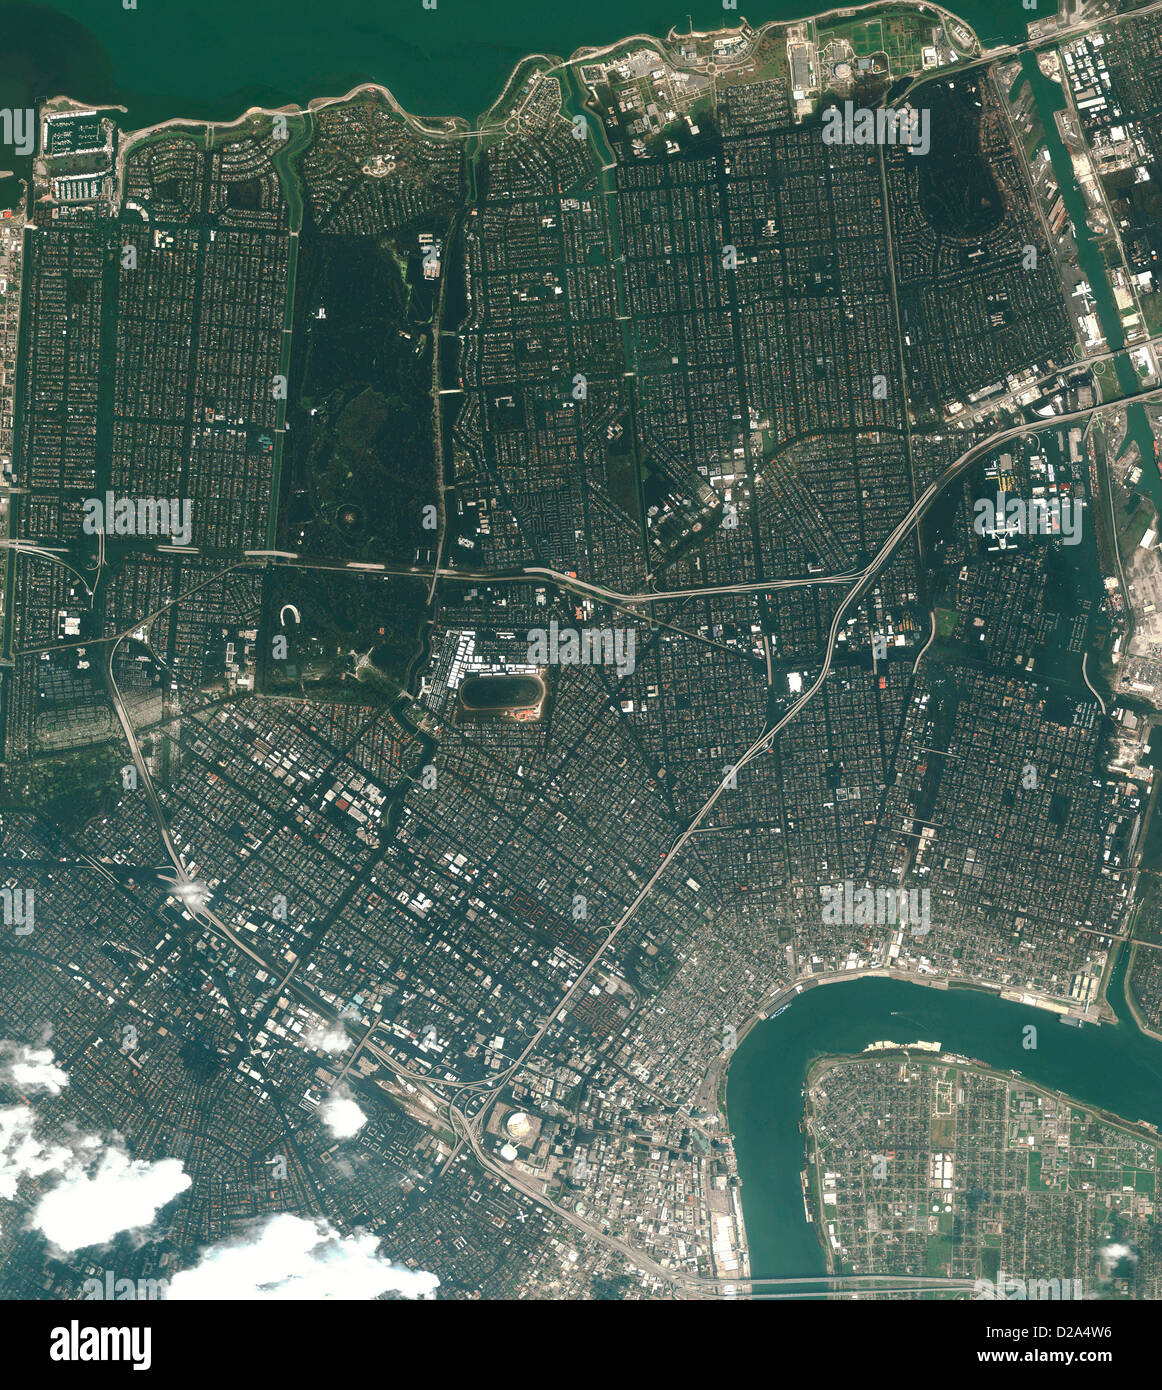 Satellite View Flooded New Orleans In Aftermath Hurricane Katrina (31 August 2005) (2 2 In Series See M2-0397 For - Stock Image